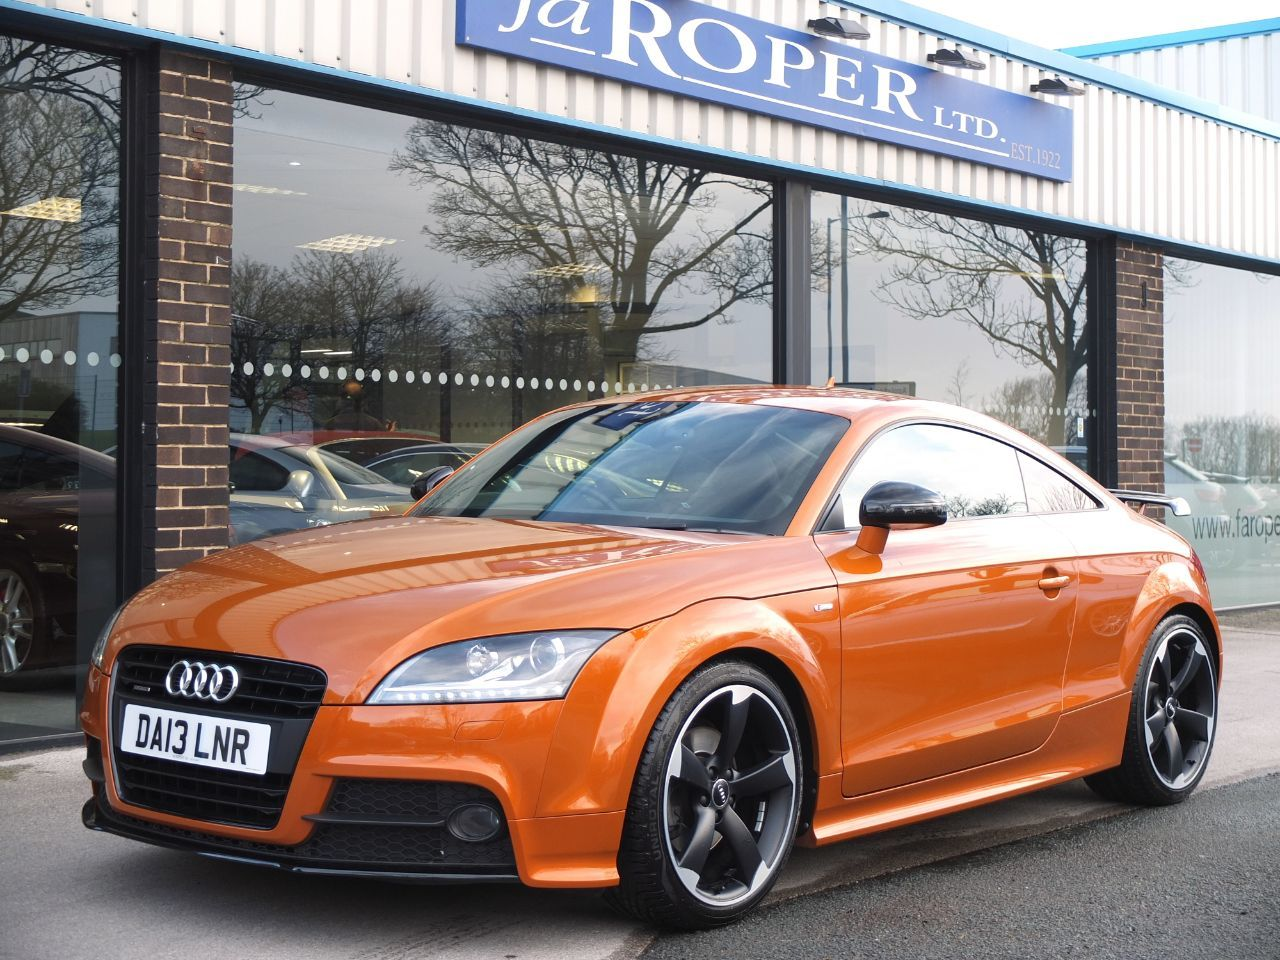 Audi TT 2.0 TDI Quattro Black Edition S Tronic (Amplified Edition +++ Spec) Coupe Diesel Samoa Orange MetallicAudi TT 2.0 TDI Quattro Black Edition S Tronic (Amplified Edition +++ Spec) Coupe Diesel Samoa Orange Metallic at fa Roper Ltd Bradford